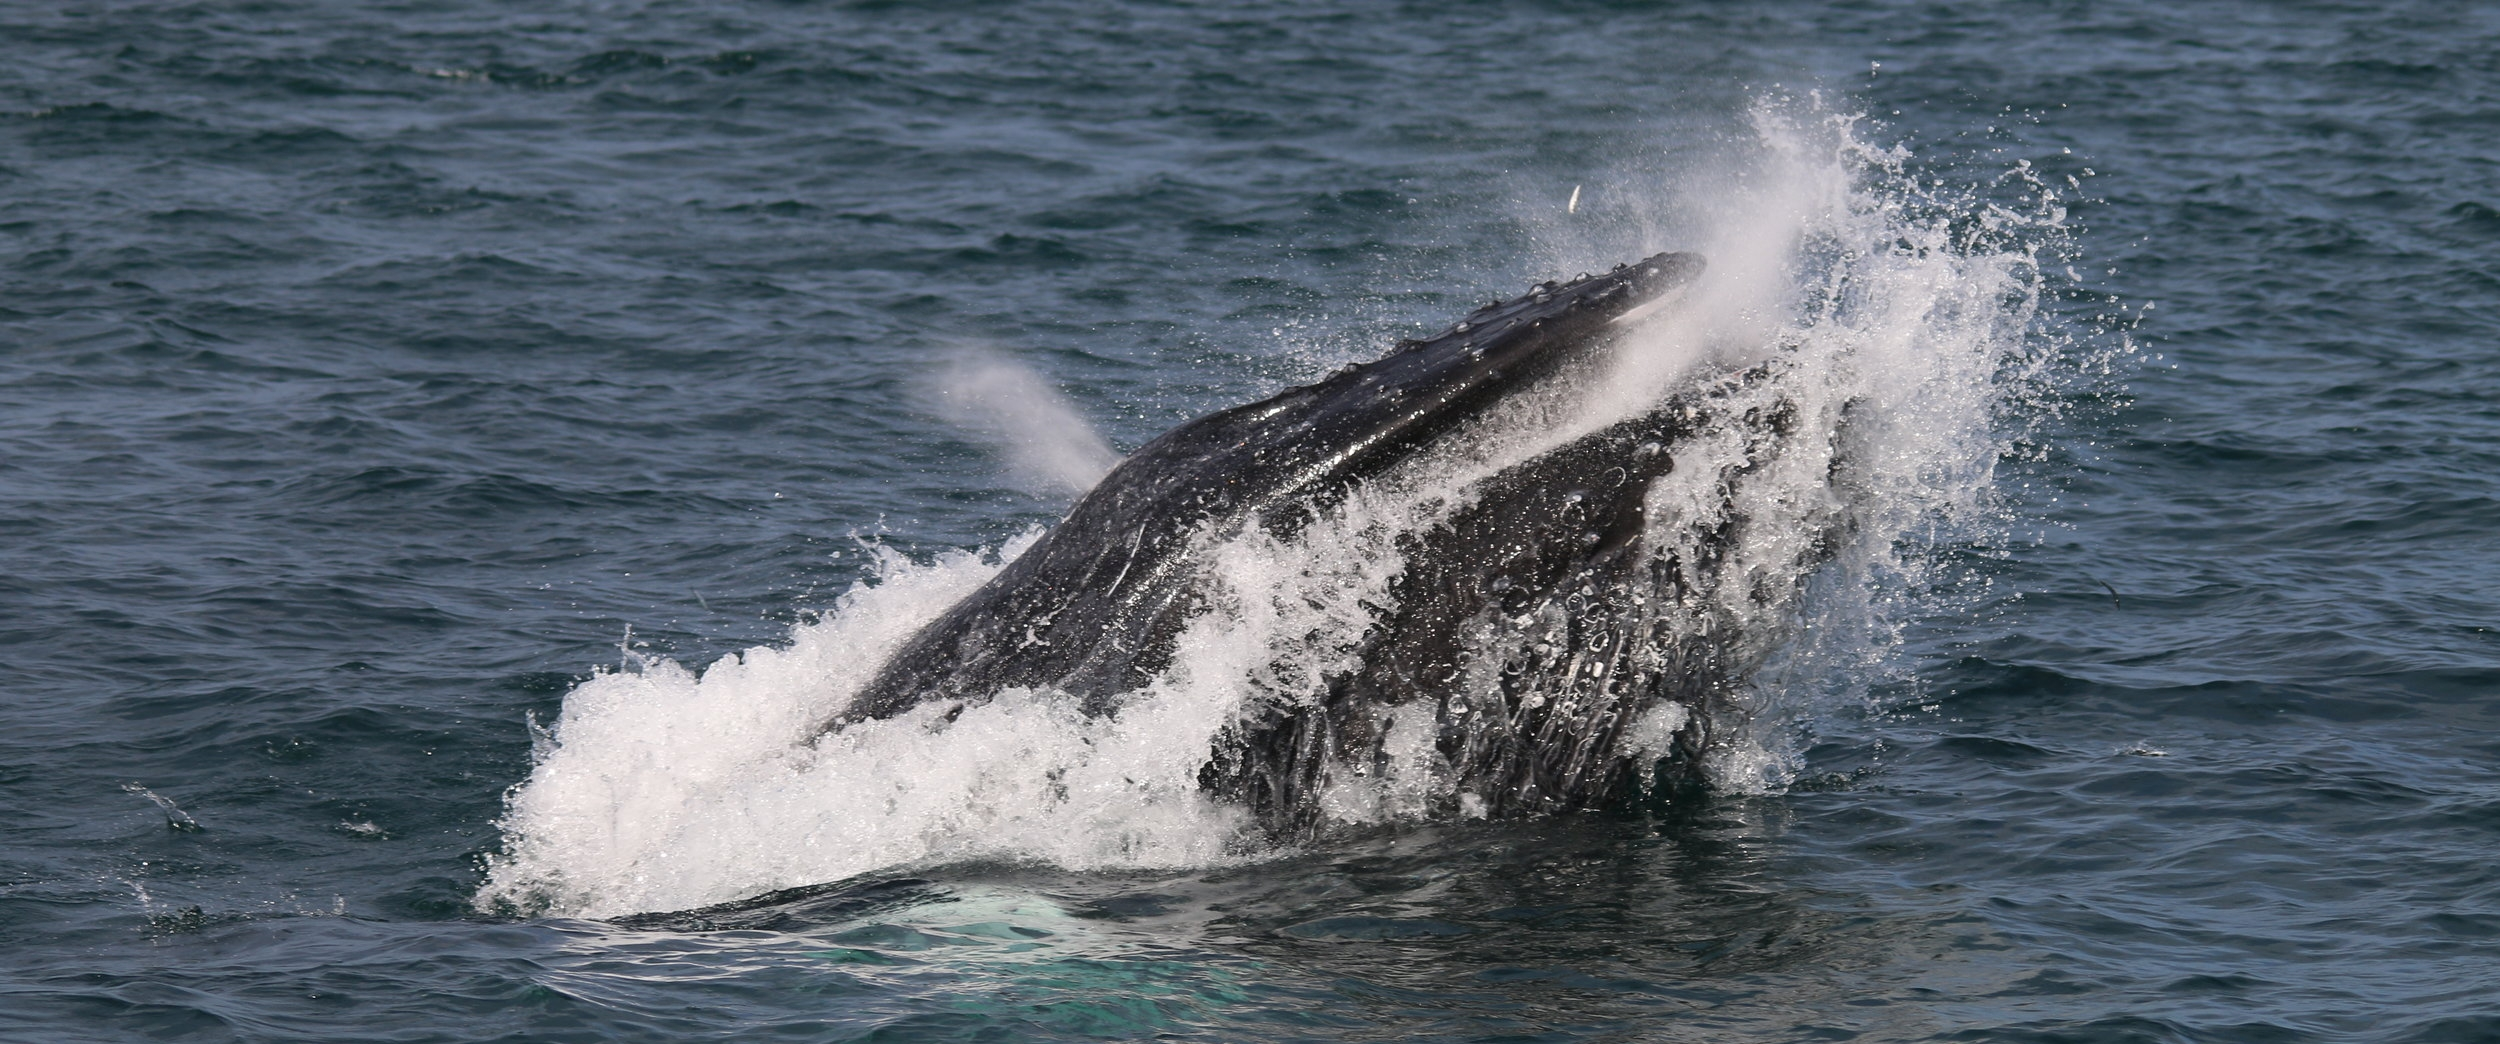 The humpback whale lunge feeding, an effective technique for consuming large amounts of prey!